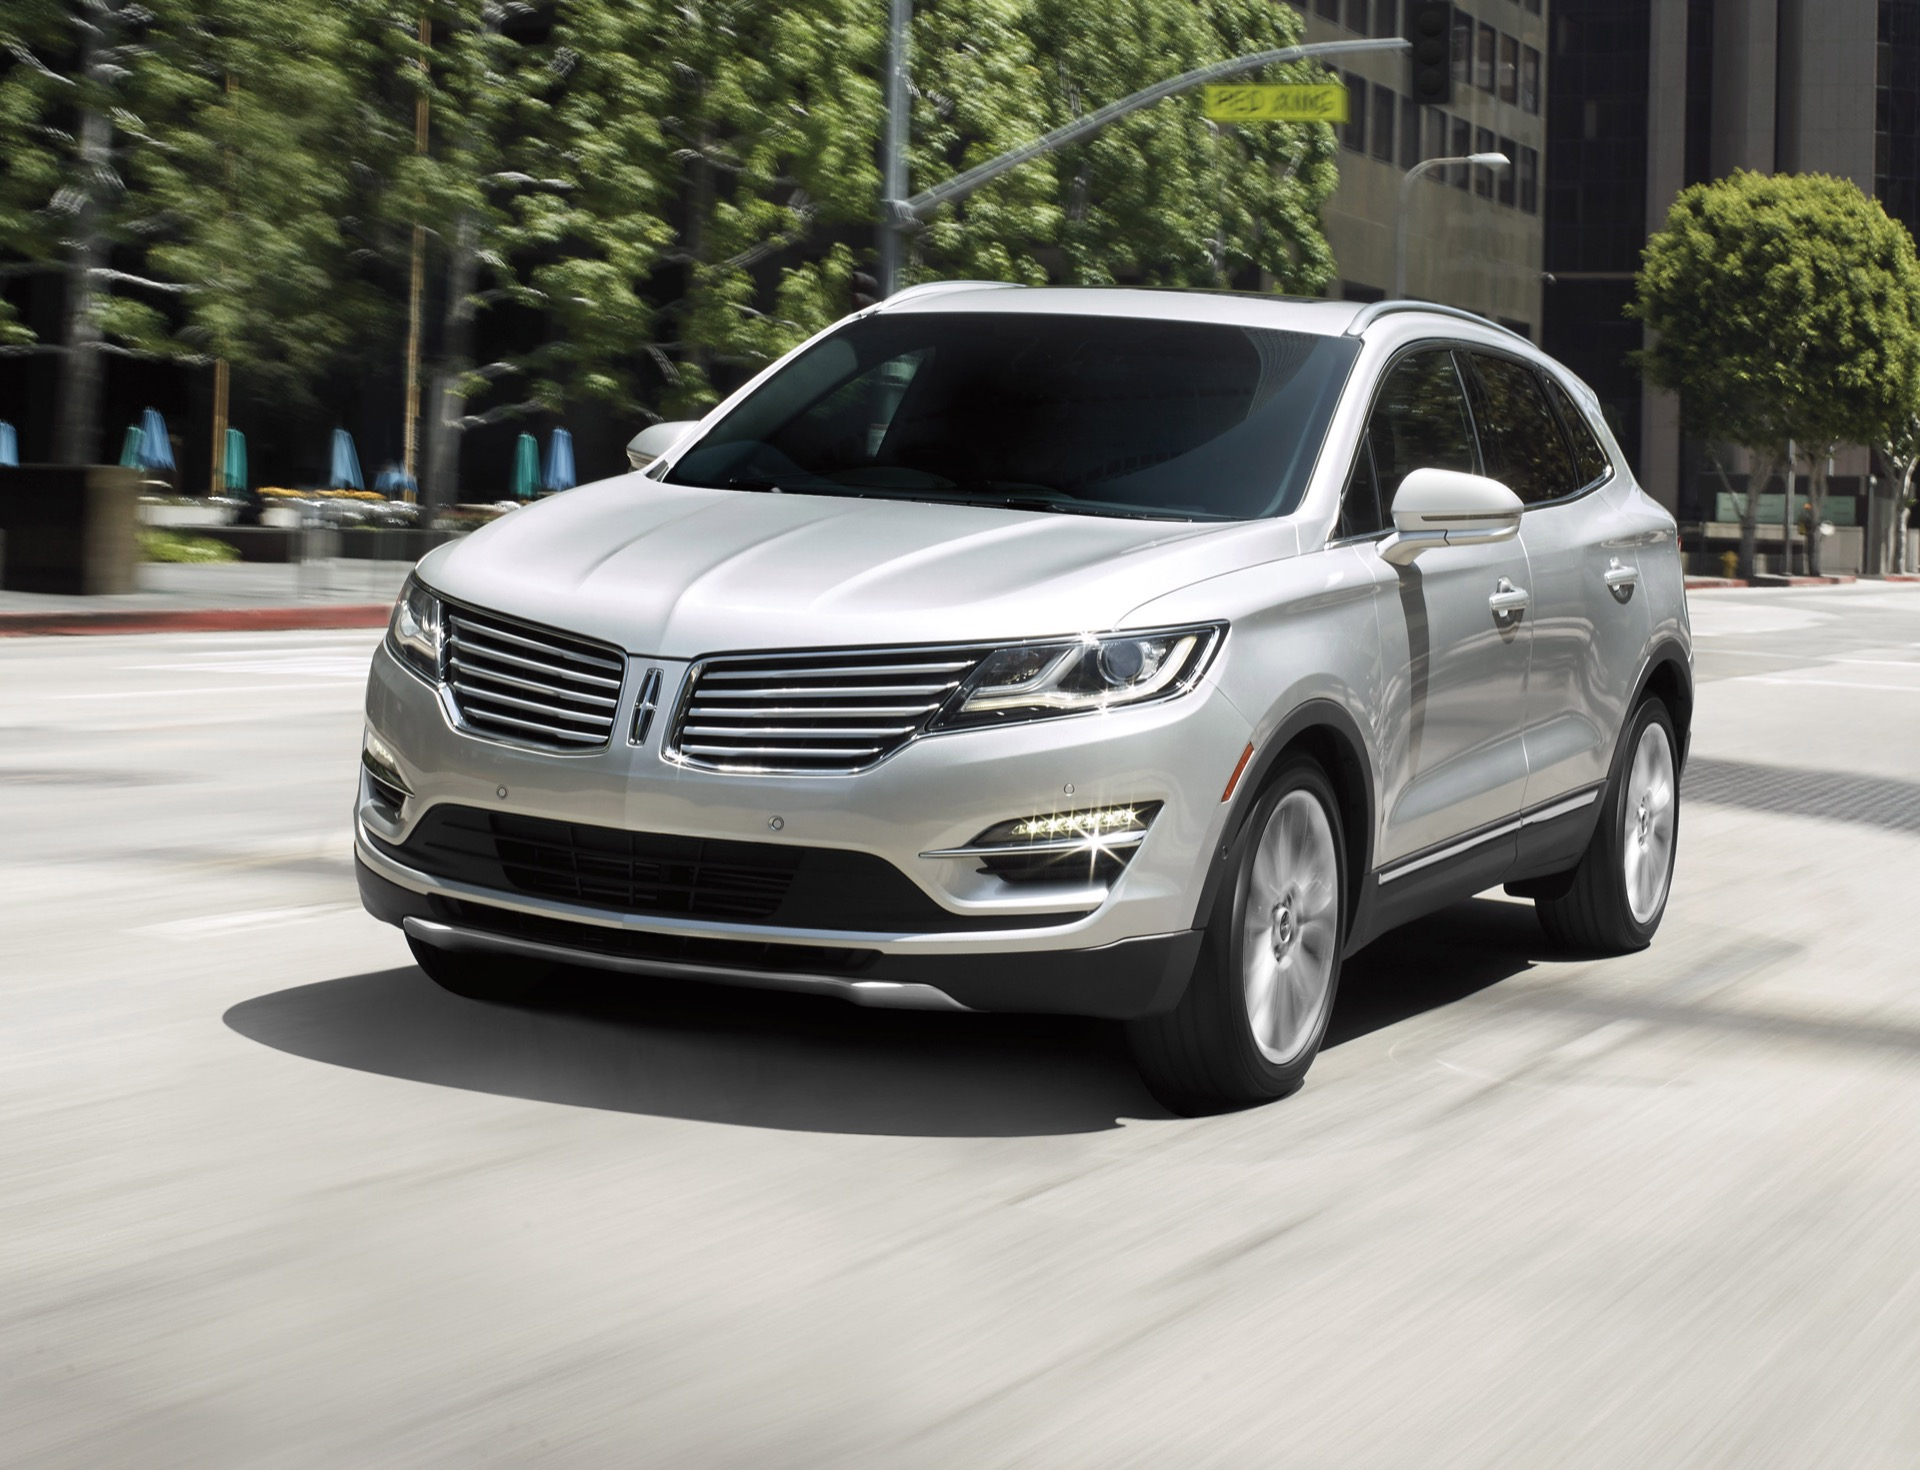 2016 lincoln mkc review ratings specs prices and photos the car connection. Black Bedroom Furniture Sets. Home Design Ideas